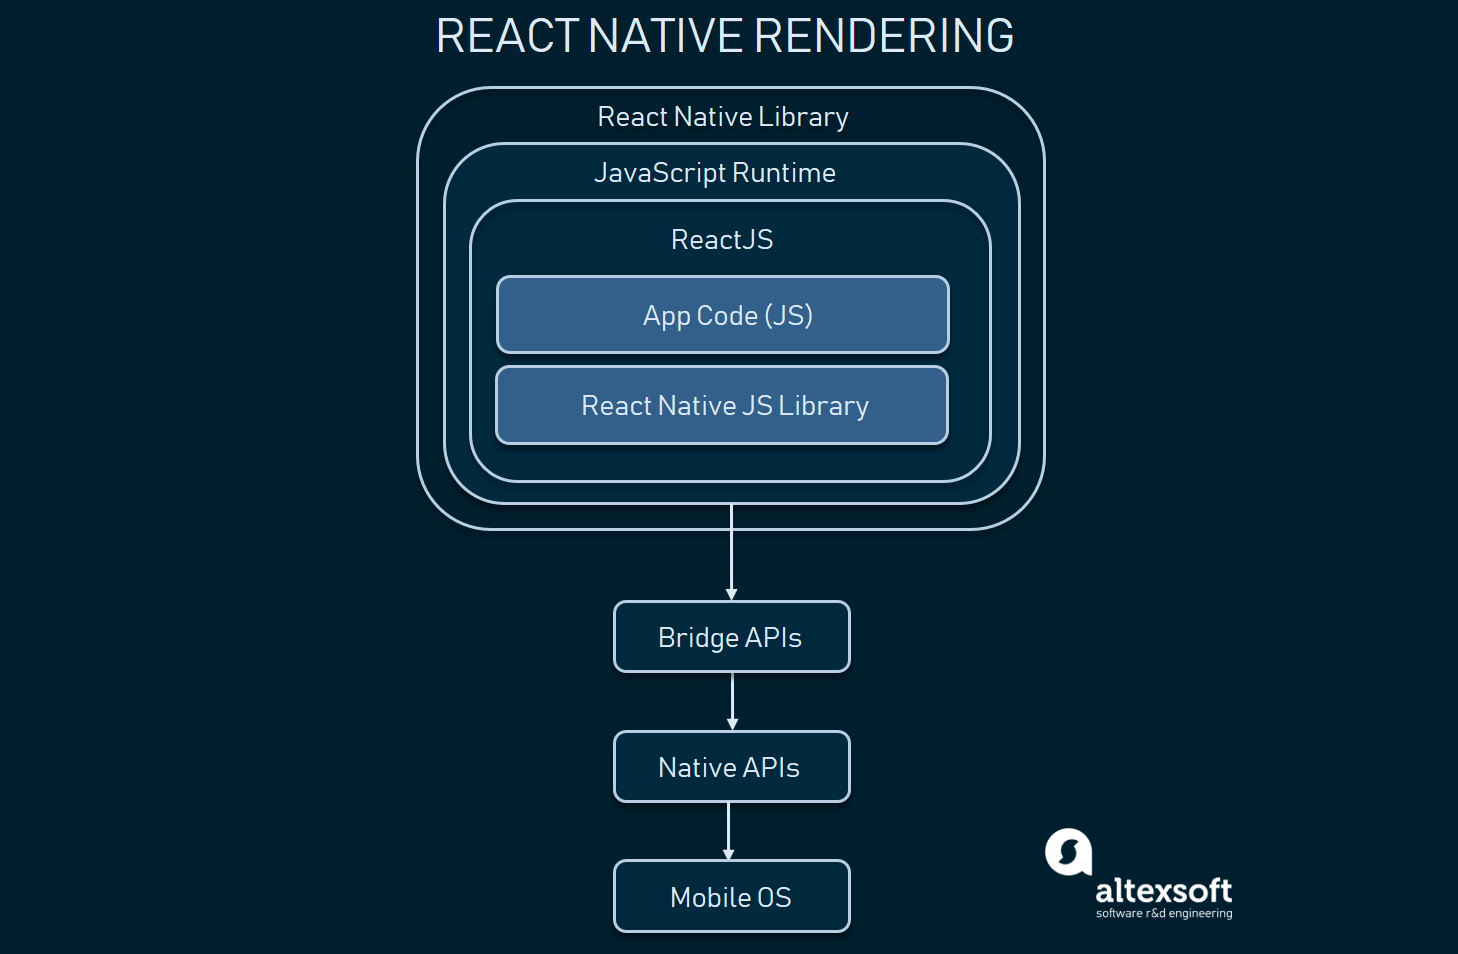 React Native rendering